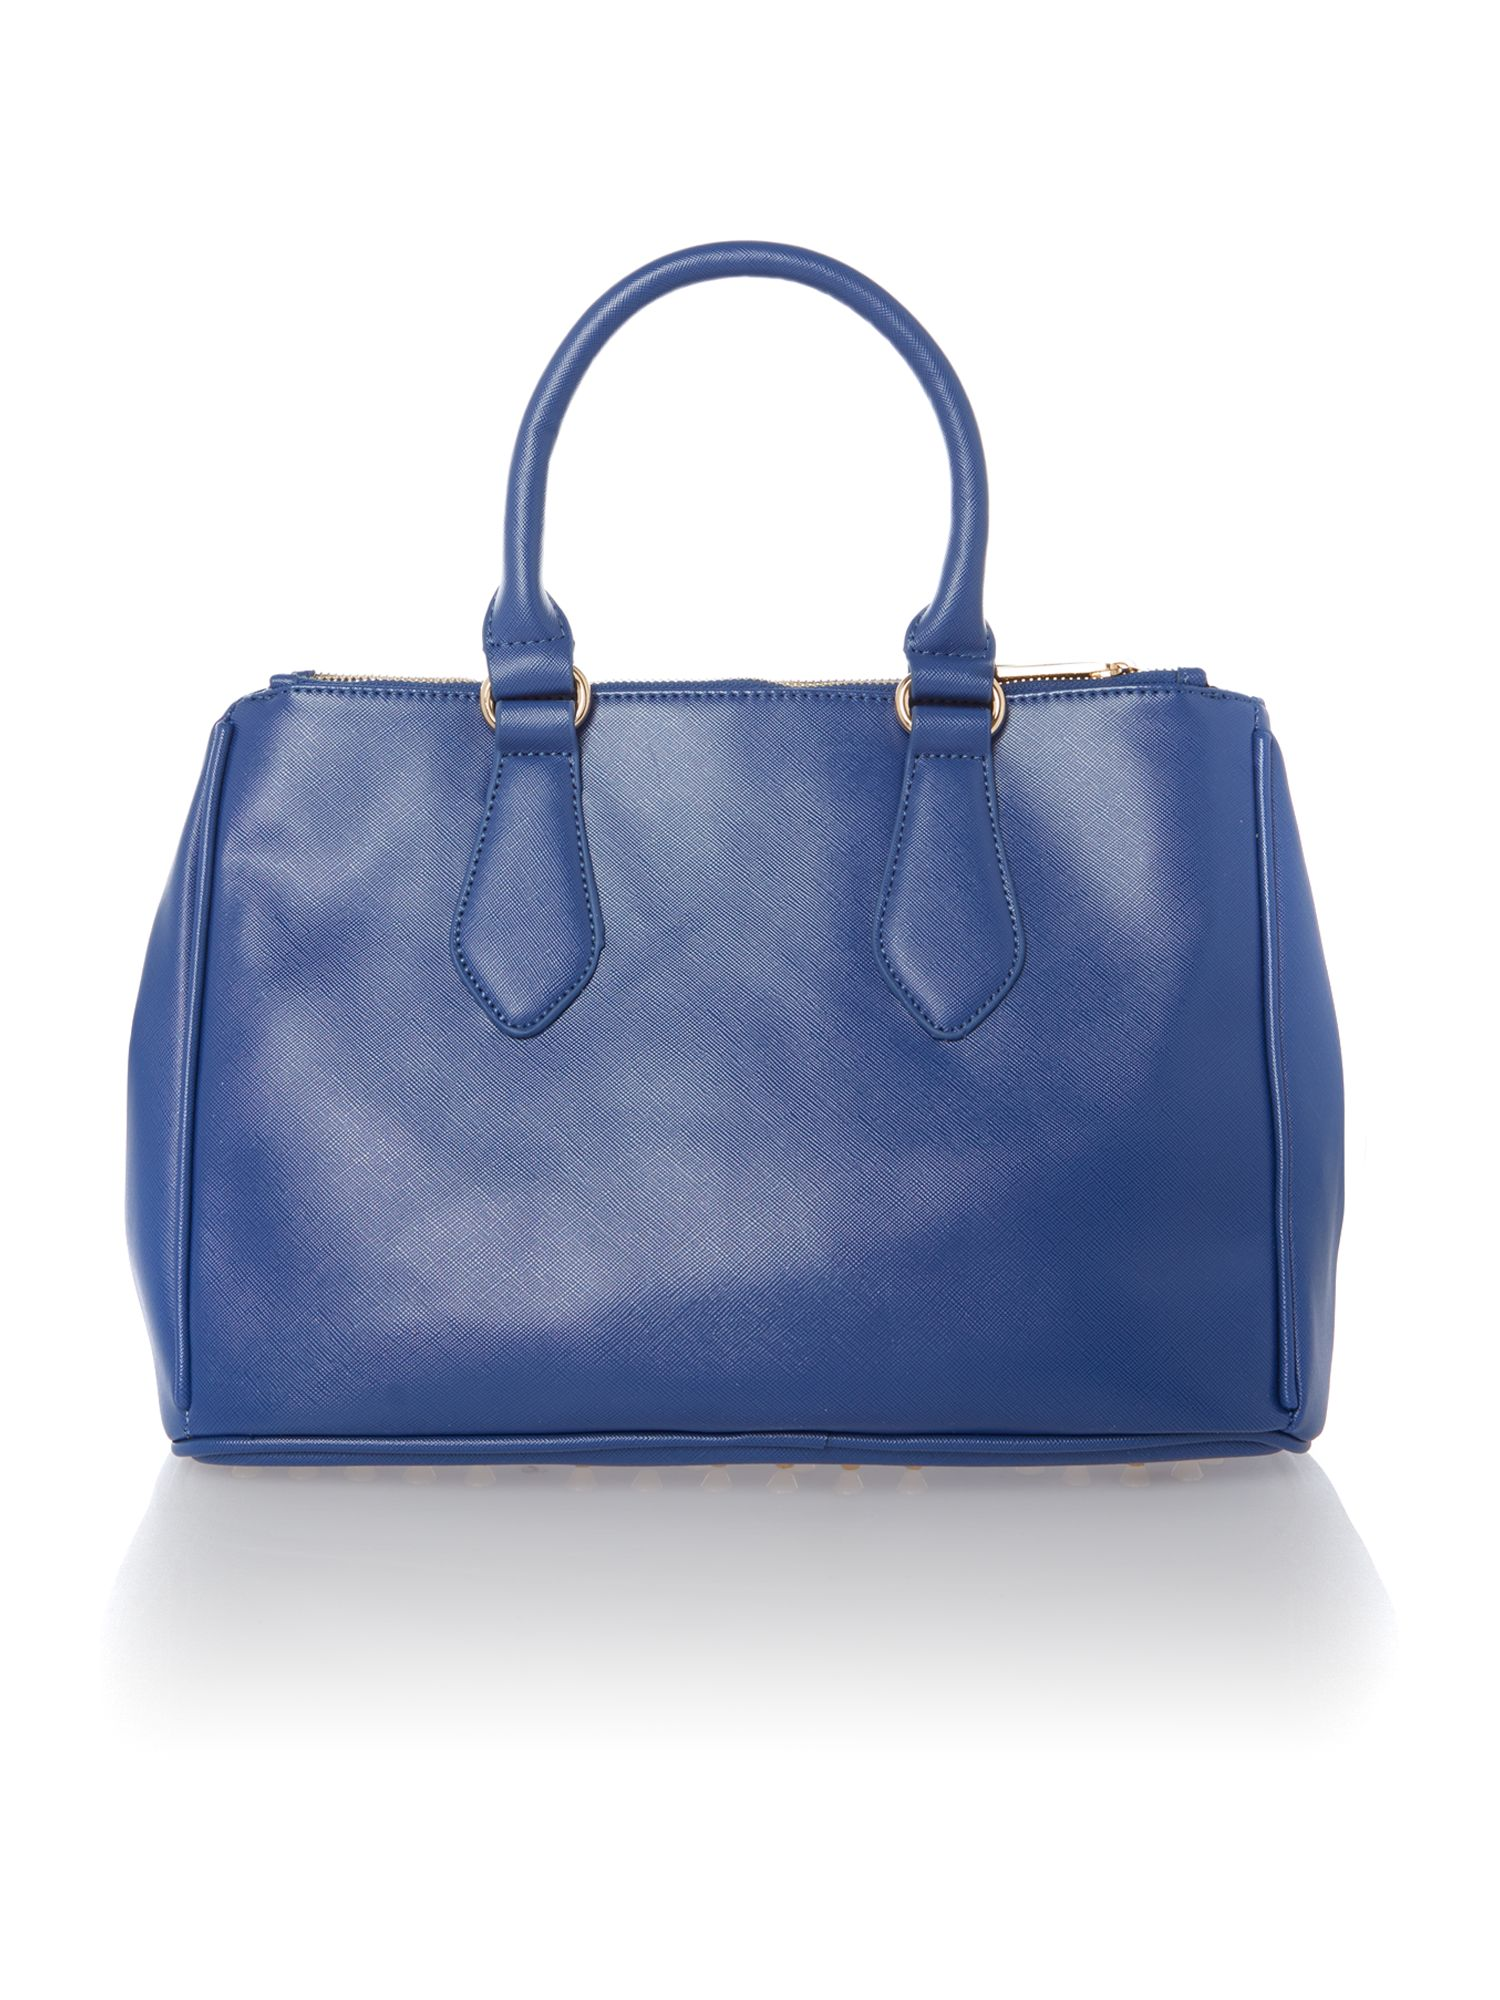 Eternity blue medium saffiano tote bag